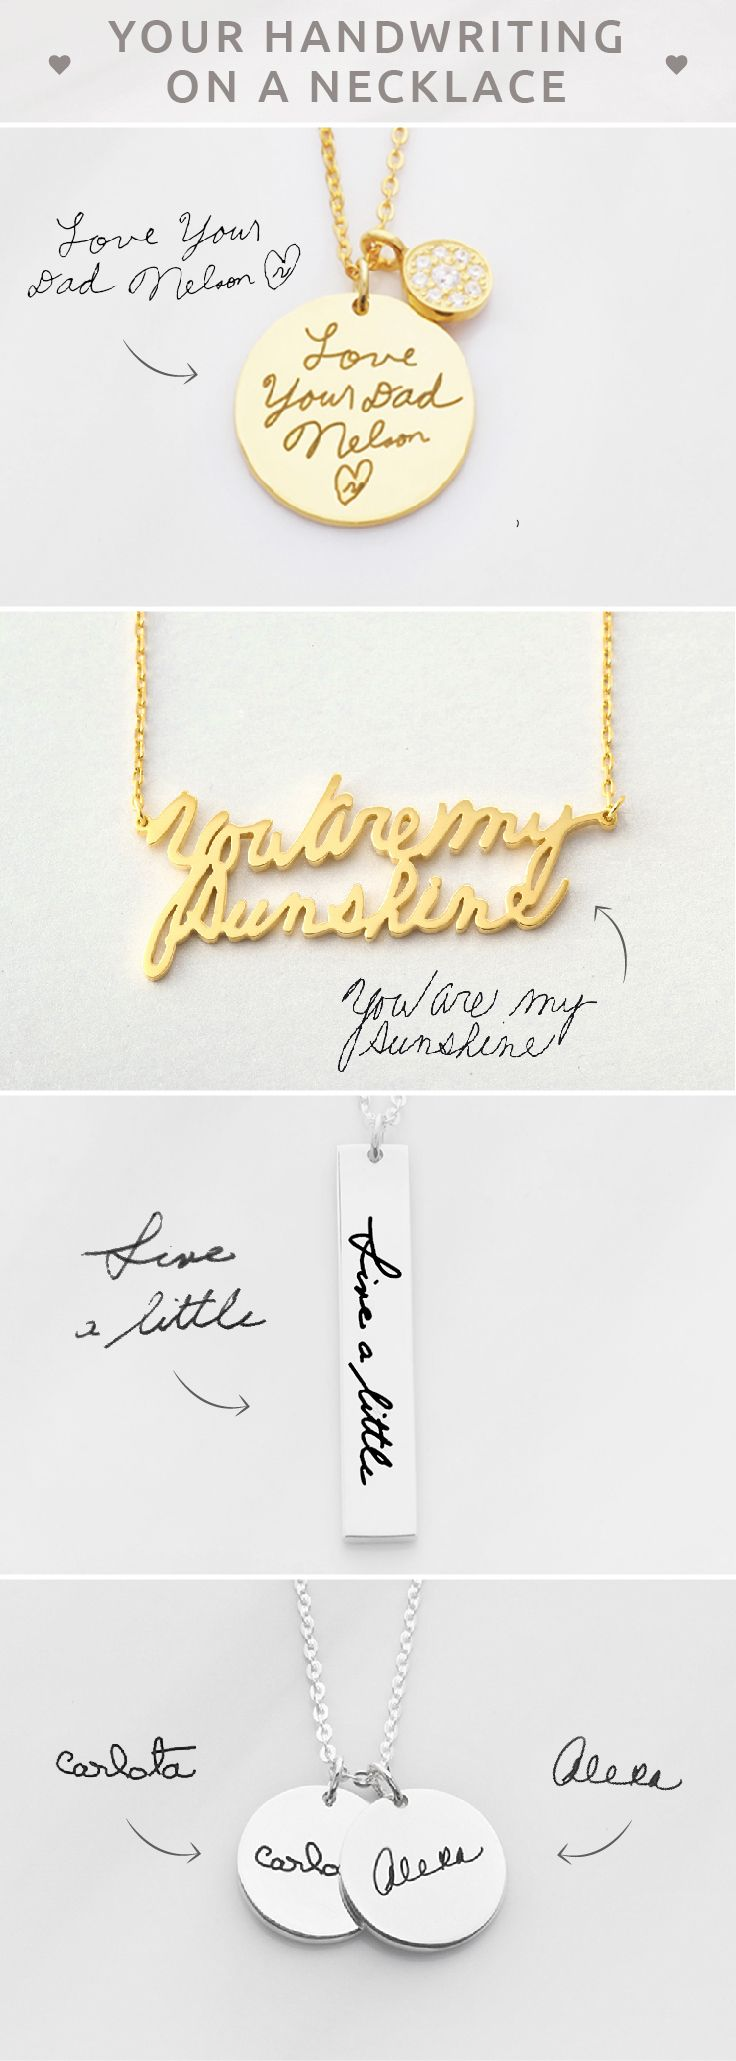 DAINTY Handwriting Necklace  • Actual handwriting necklace • Personalized handwritten necklace • Personalized Signature Necklace  • Engraved name necklace  • Memorial signature jewelry • Custom Handwriting Jewelry Sterling Silver • Memorial Necklace • Memorial jewelry for wedding • Christmas gifts  • christmas presents for mother in law • personalised engagement gifts for engaged couple • unique teacher gifts • birthday gift ideas for mom • bff gifts • unique gifts for mom